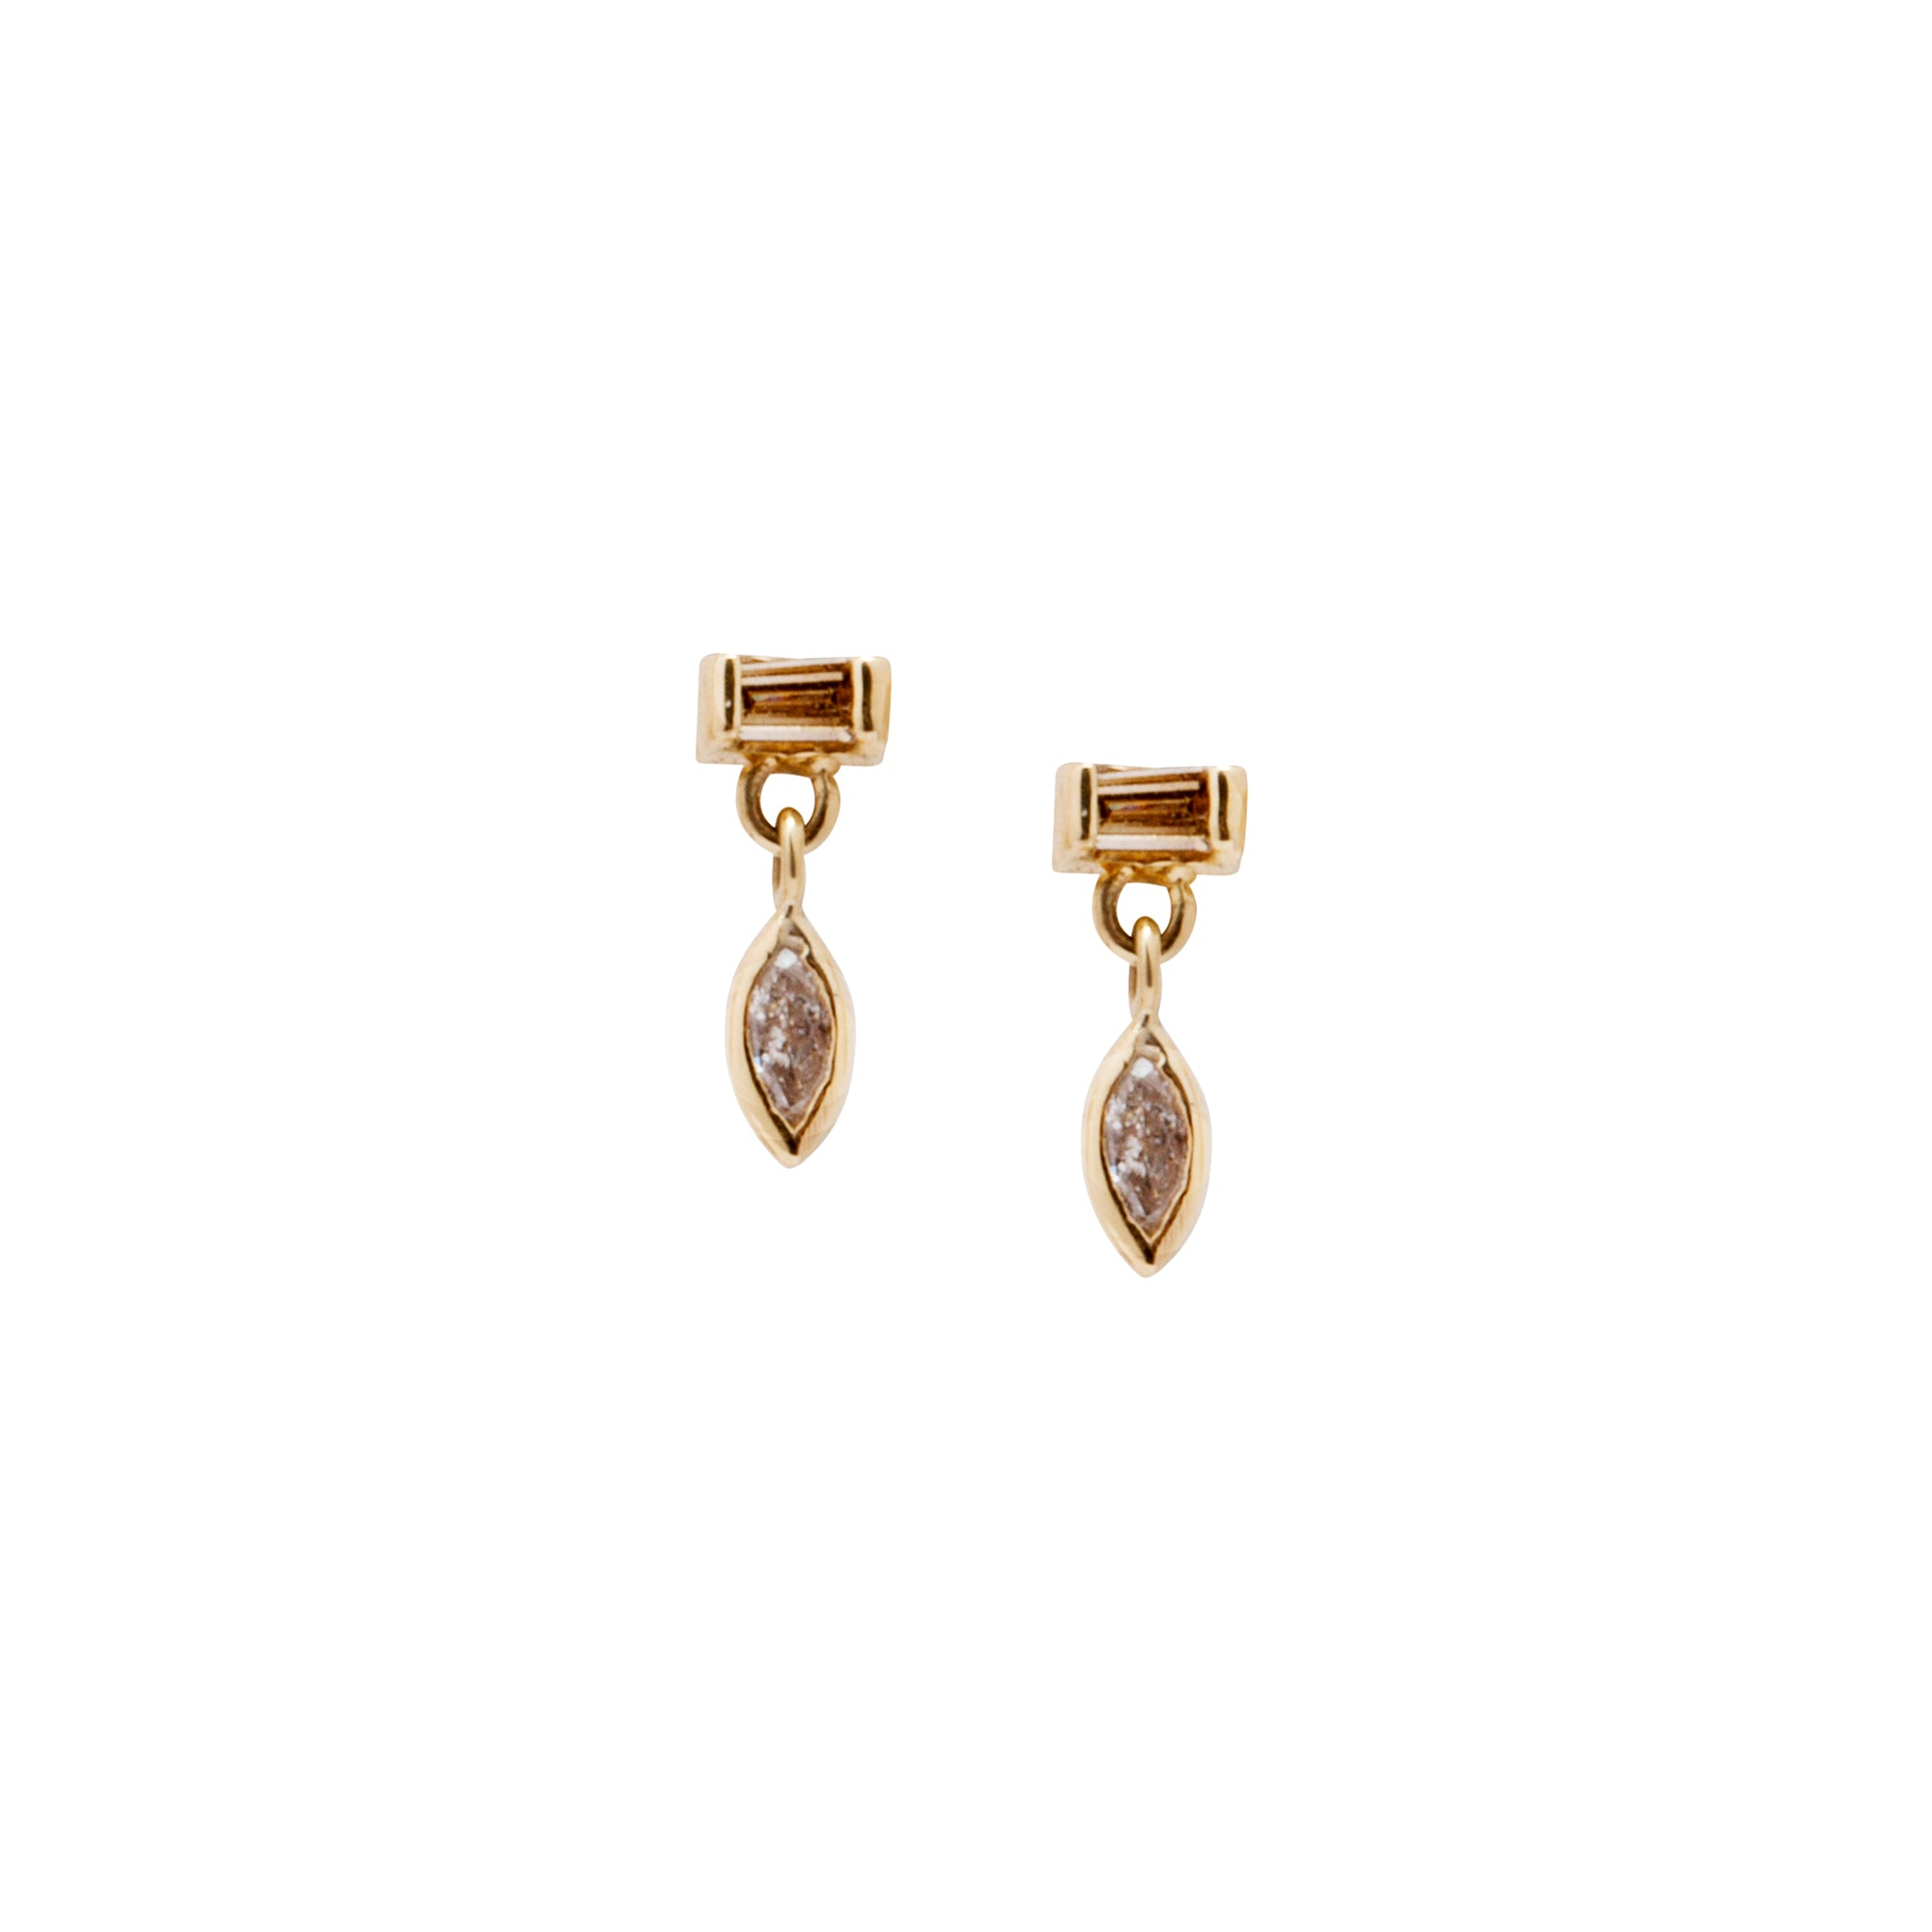 Gold Diamond Gravity Dangle Studs by Xiao Wang for Broken English Jewelry